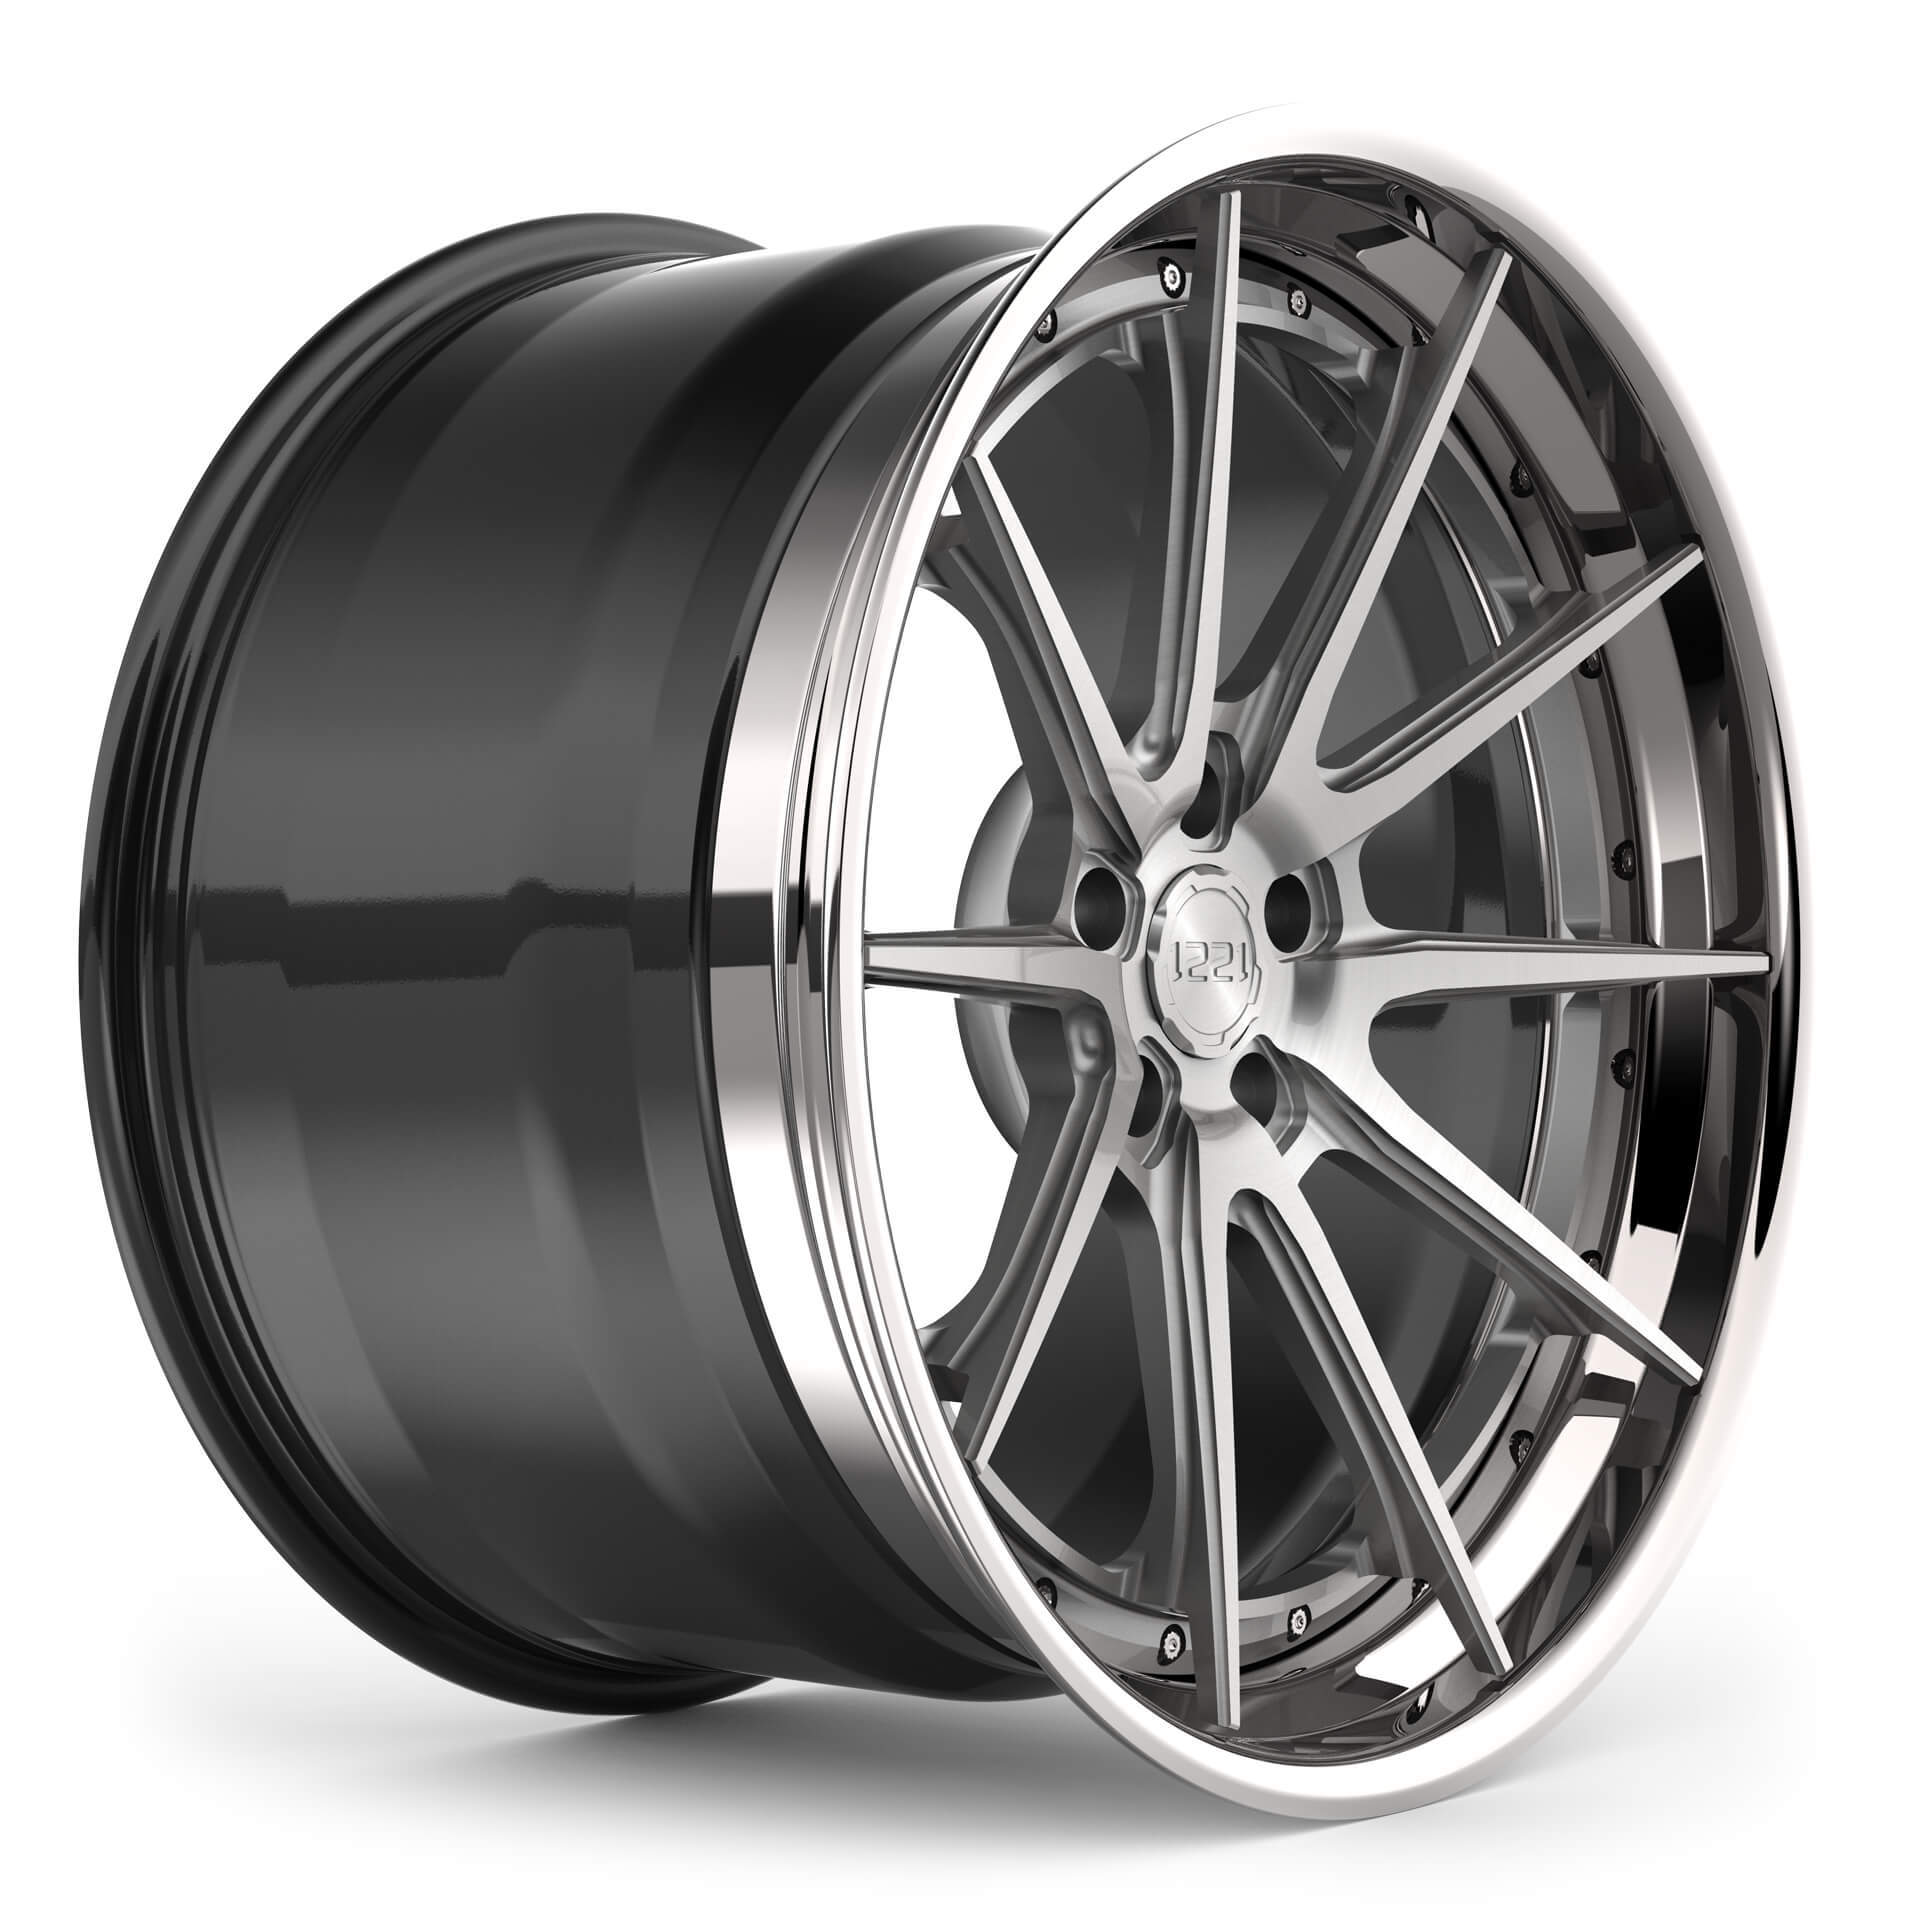 1221  Wheels 0110 AP3L SPORT3.0